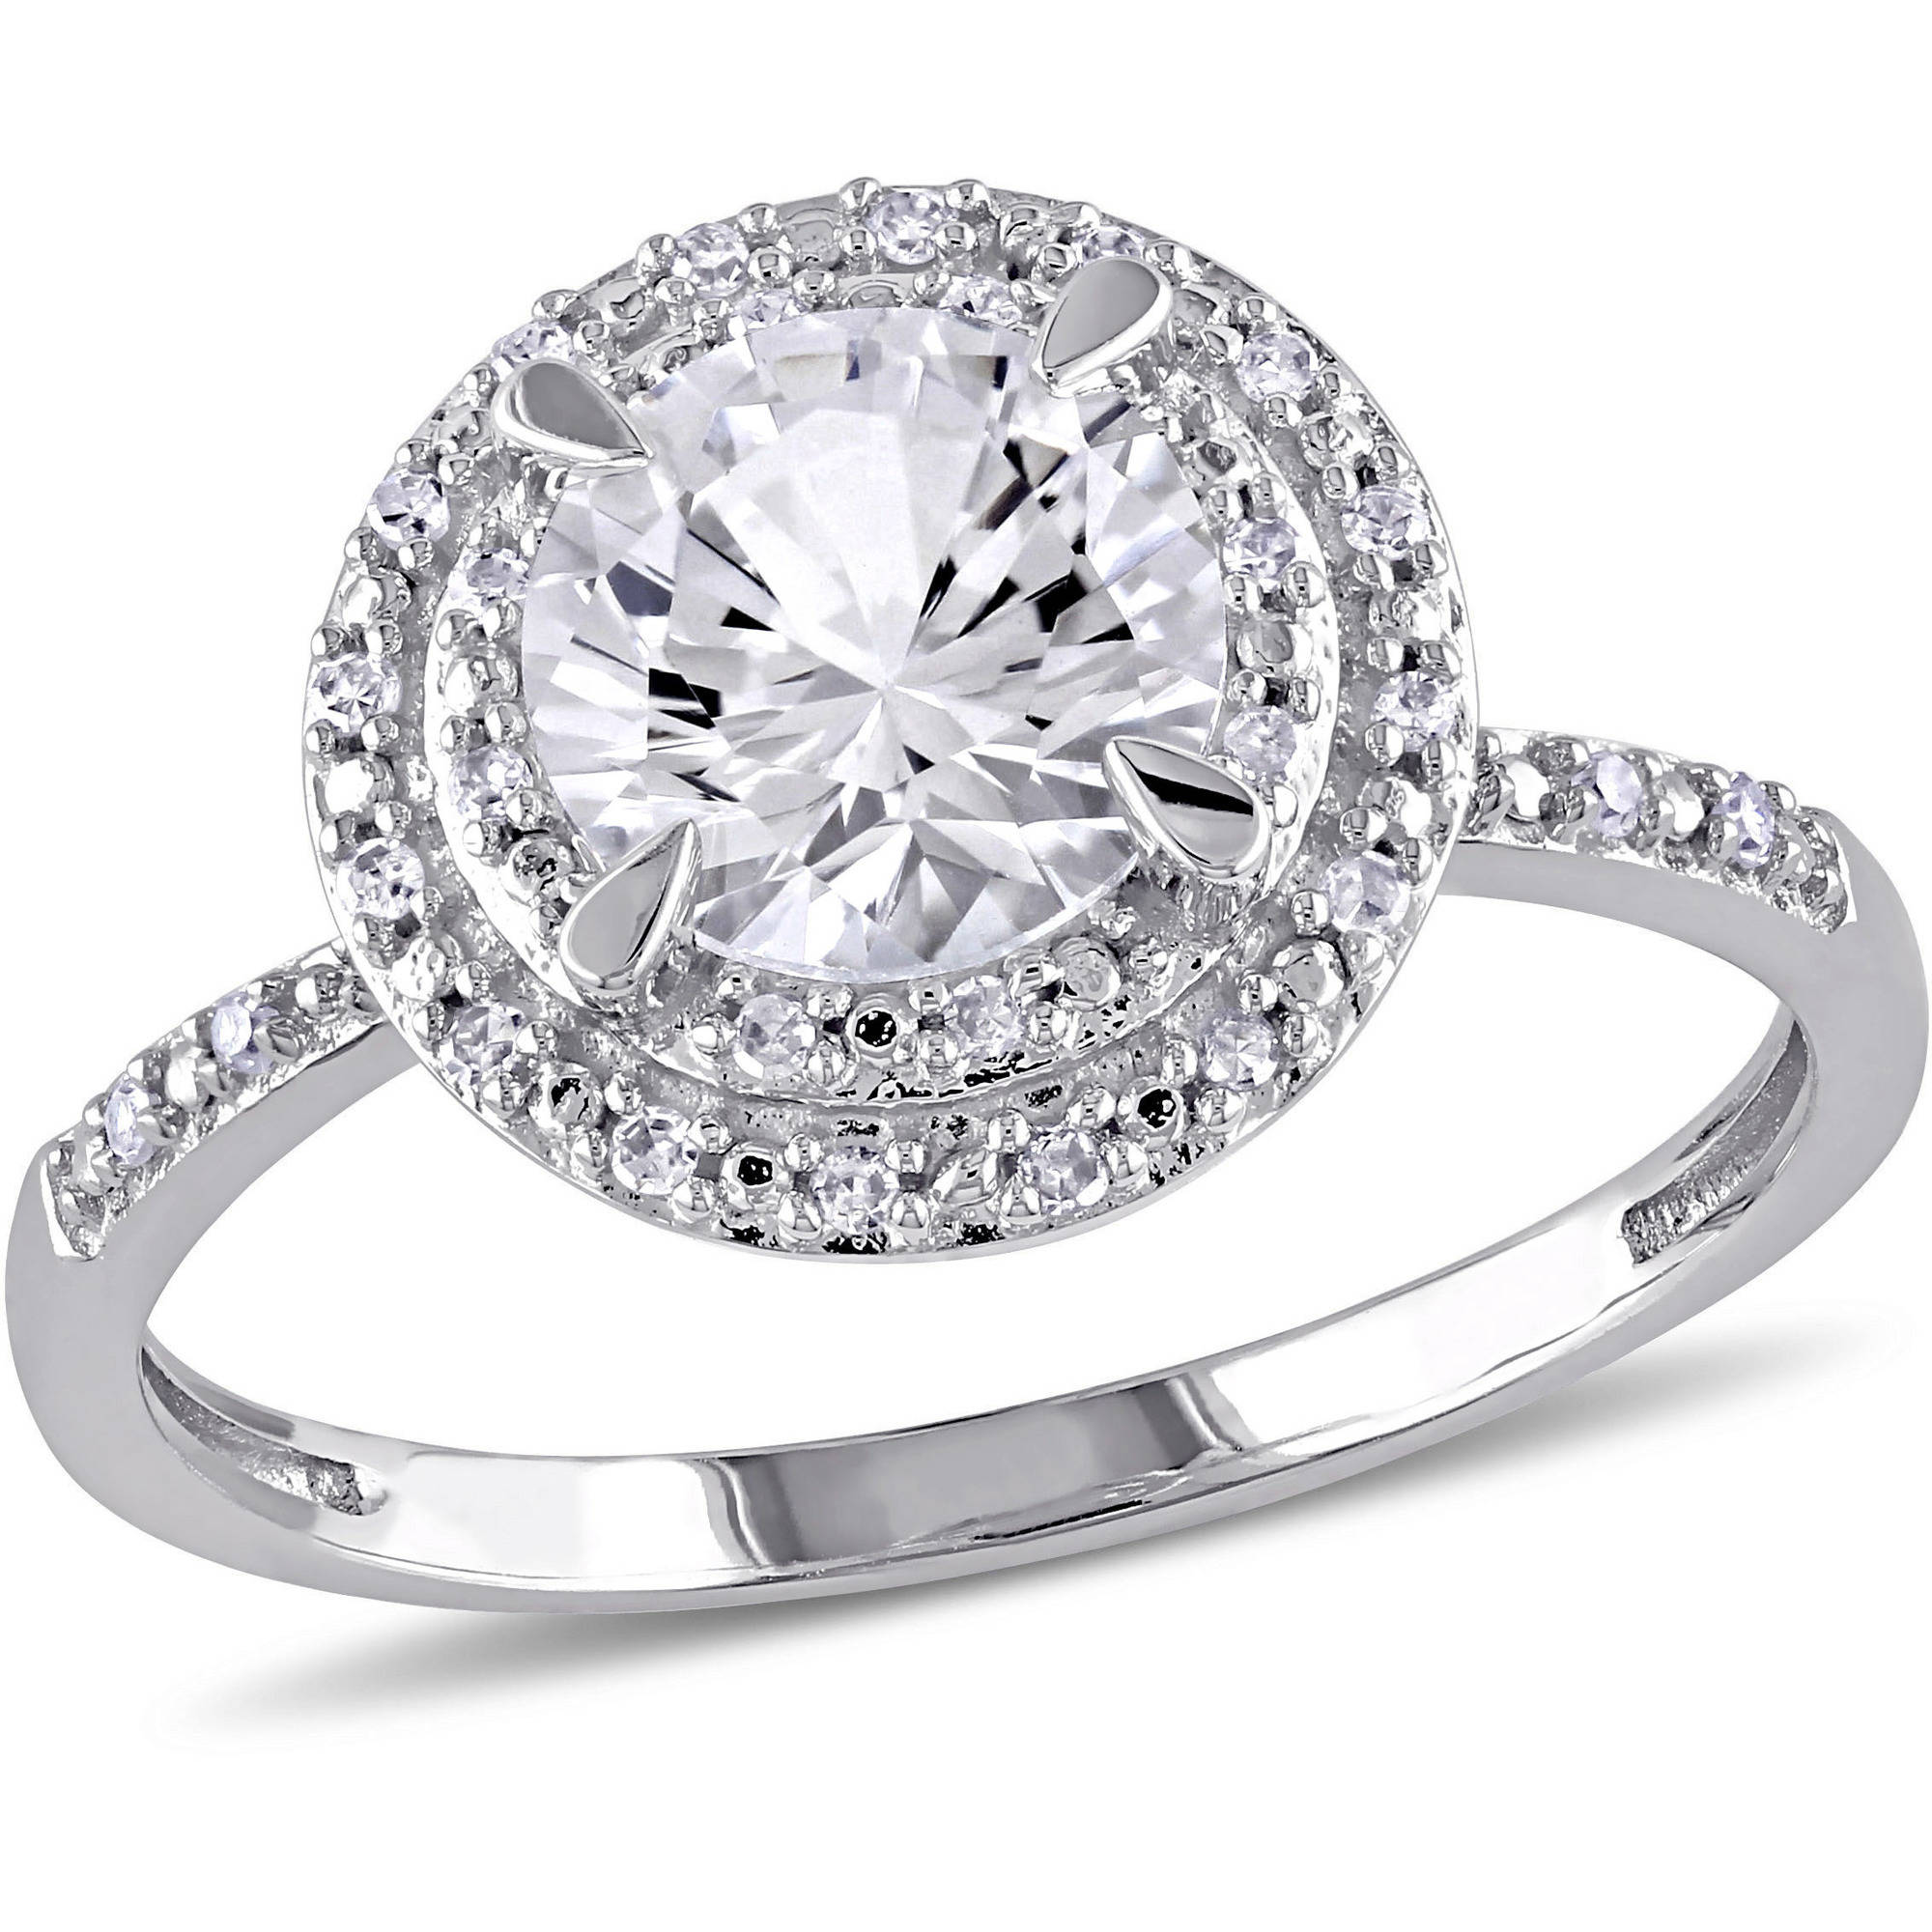 Miabella 1-5/8 Carat T.G.W. Created White Sapphire and 1/10 T.W. Diamond 10kt White Gold Halo Engagement Ring